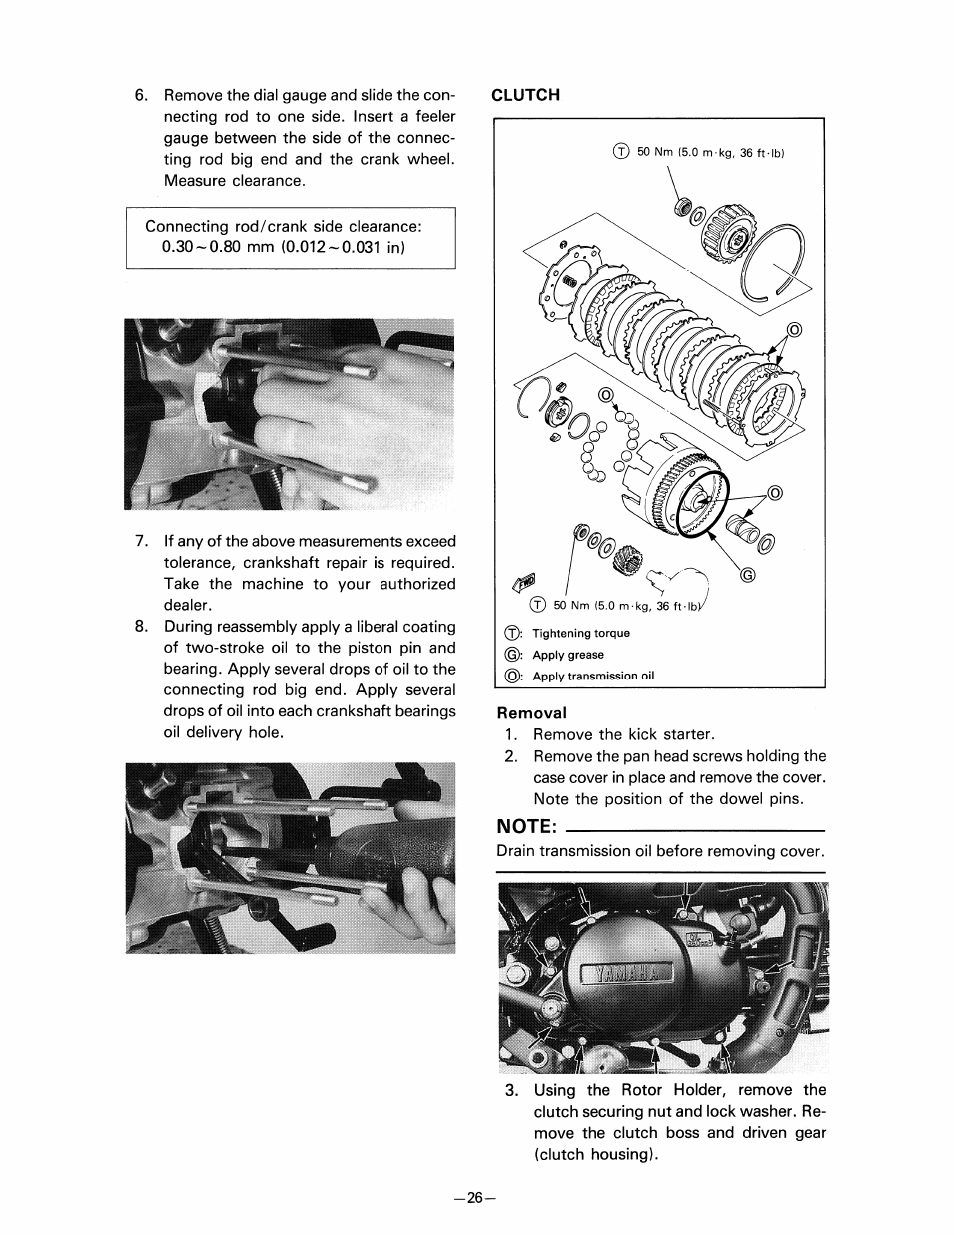 Removal, Note | Yamaha pw80 User Manual | Page 38 / 64